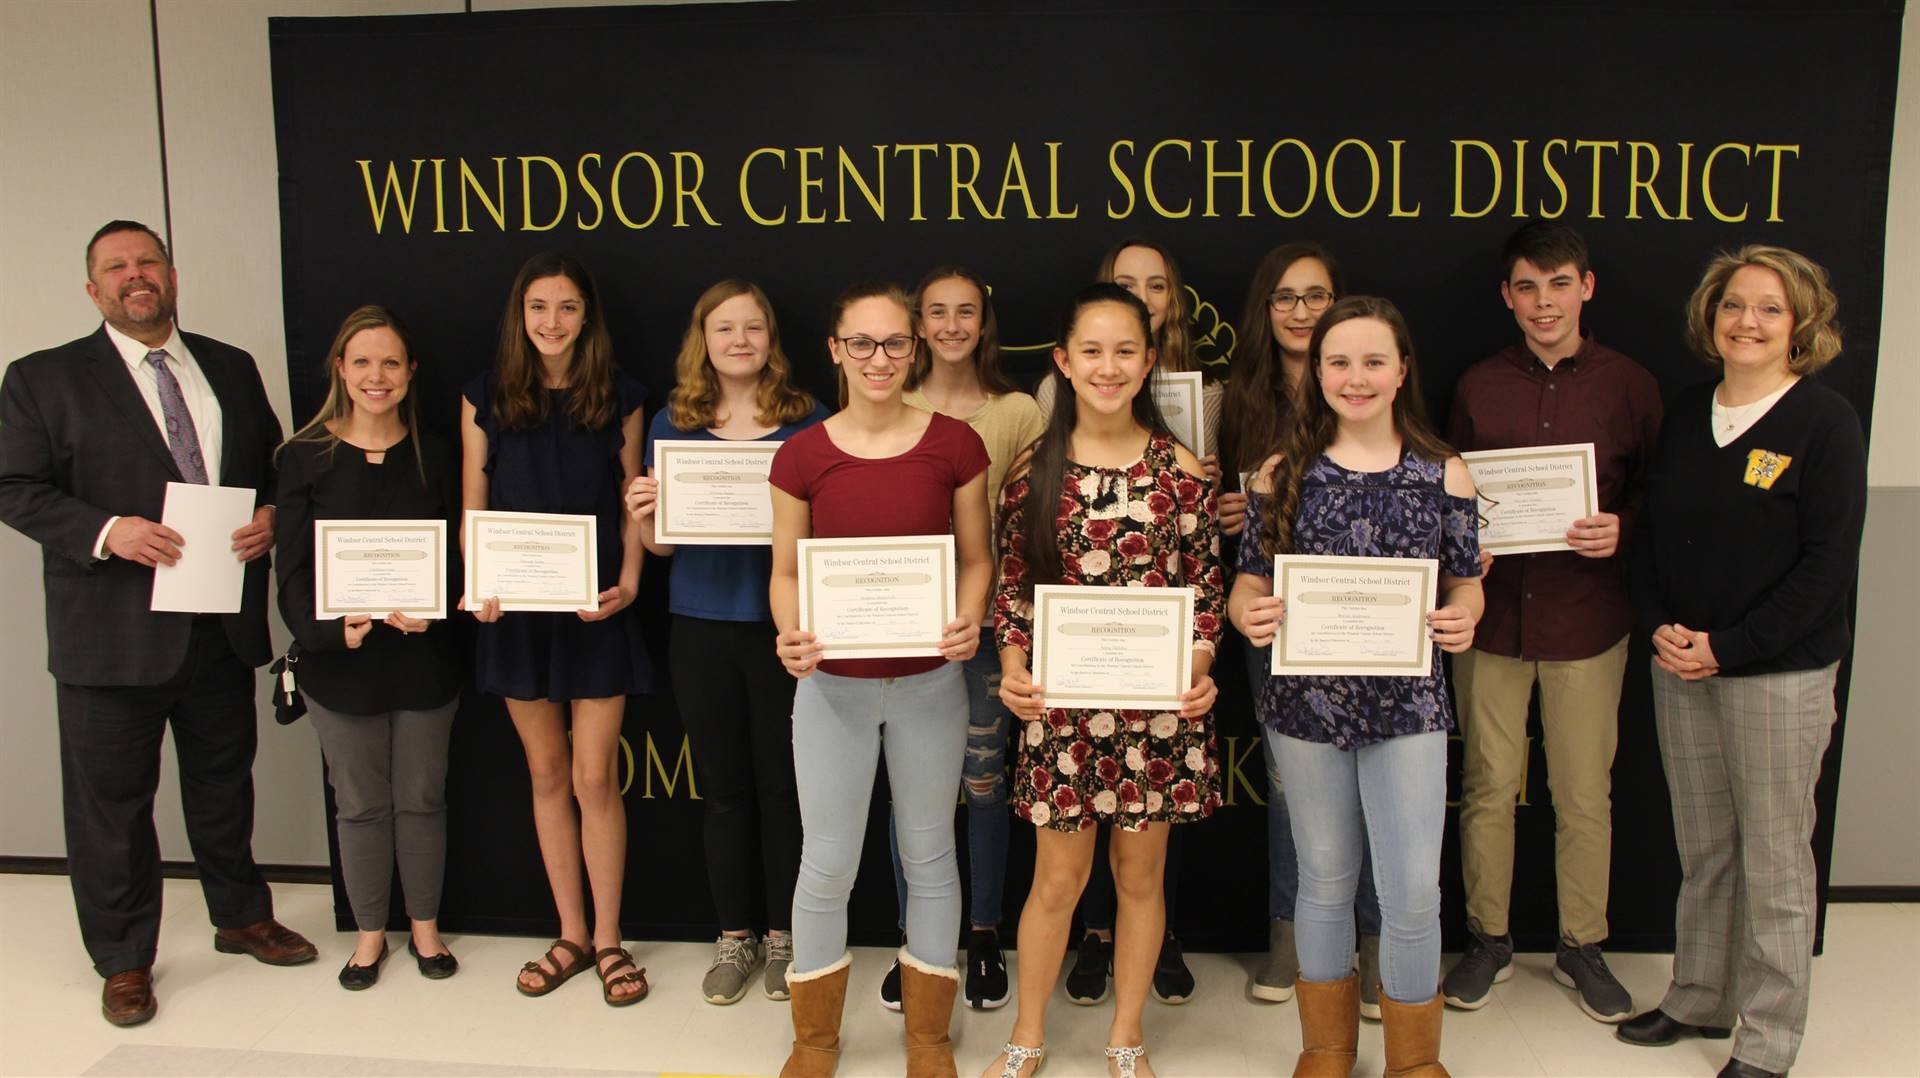 Math Counts Team: [Tori Baxter, Cassie Johnson, Jillian Munson, Aubrey Dixon, Ella Grubham, Lucy Bea